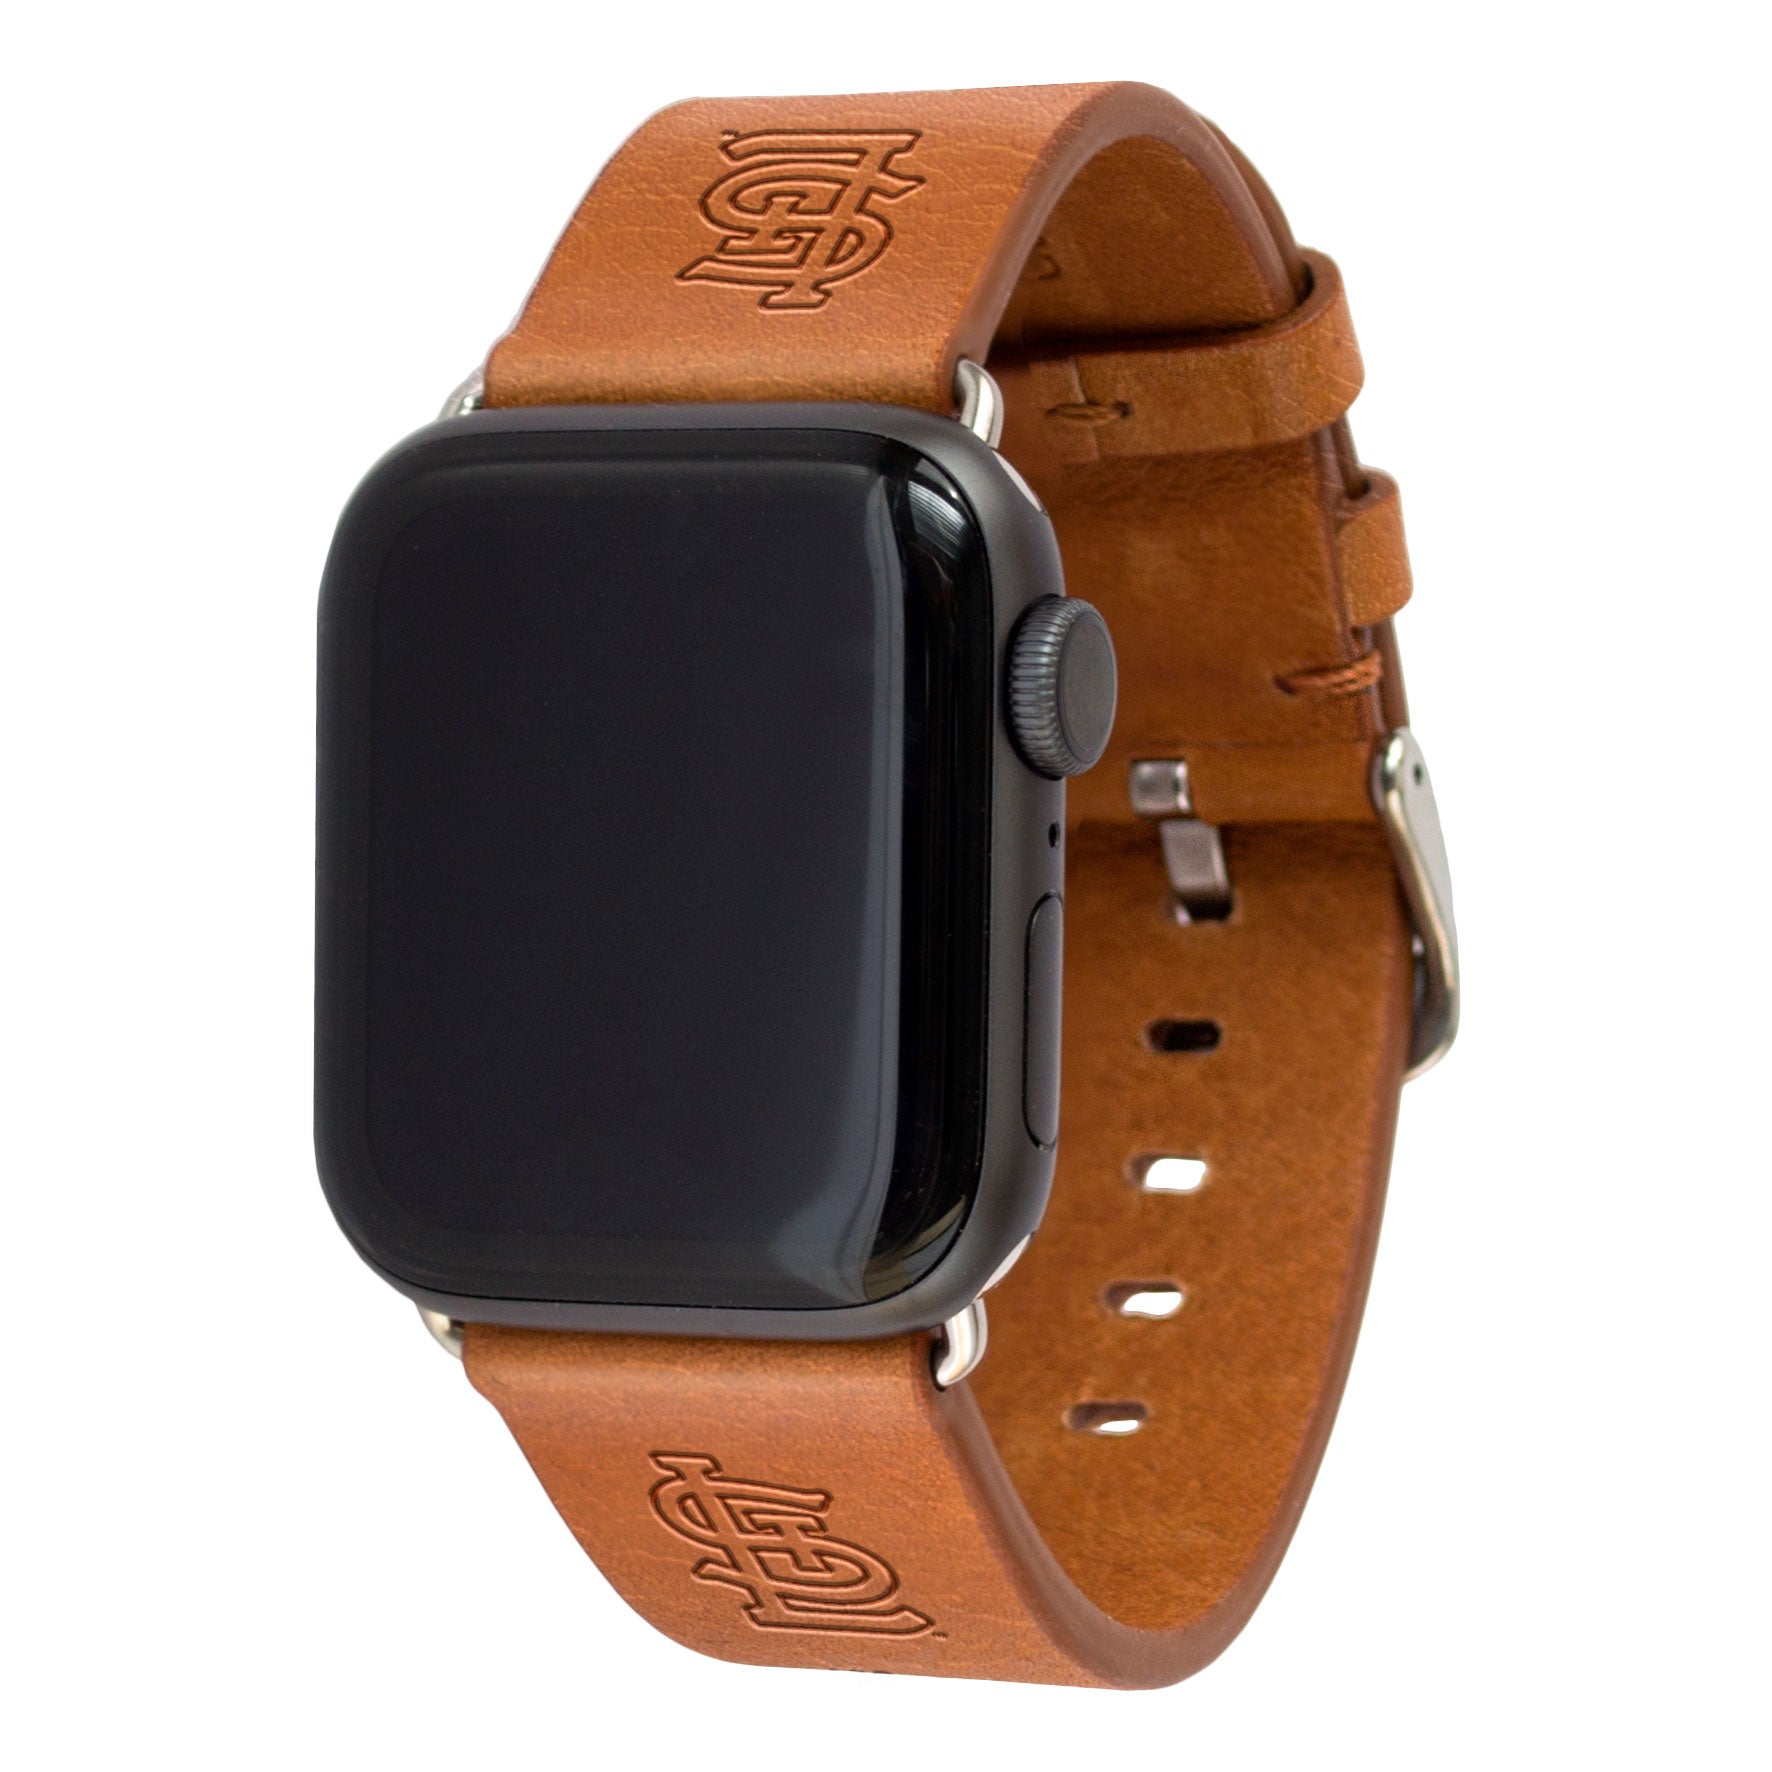 St. Louis Cardinals Leather Band Compatible With Apple Watch